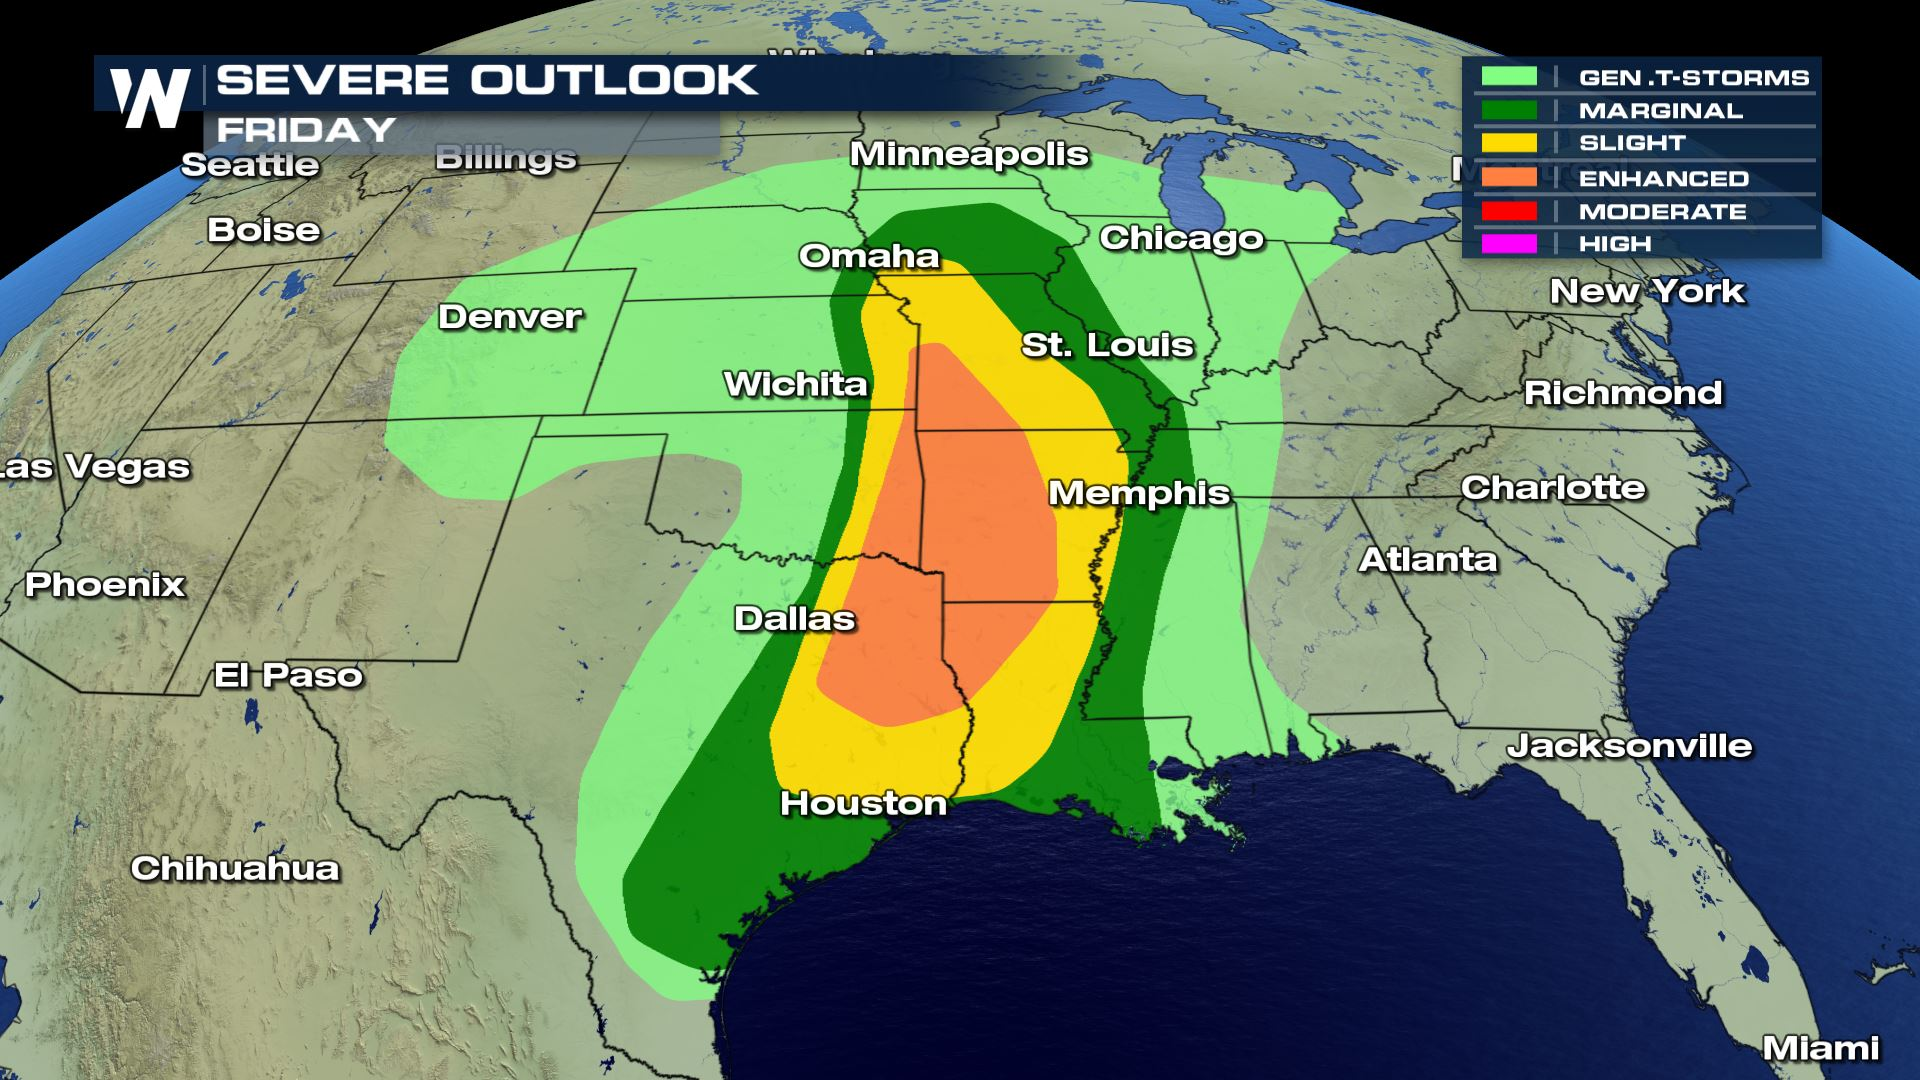 Severe Weather Update for Friday - WeatherNation